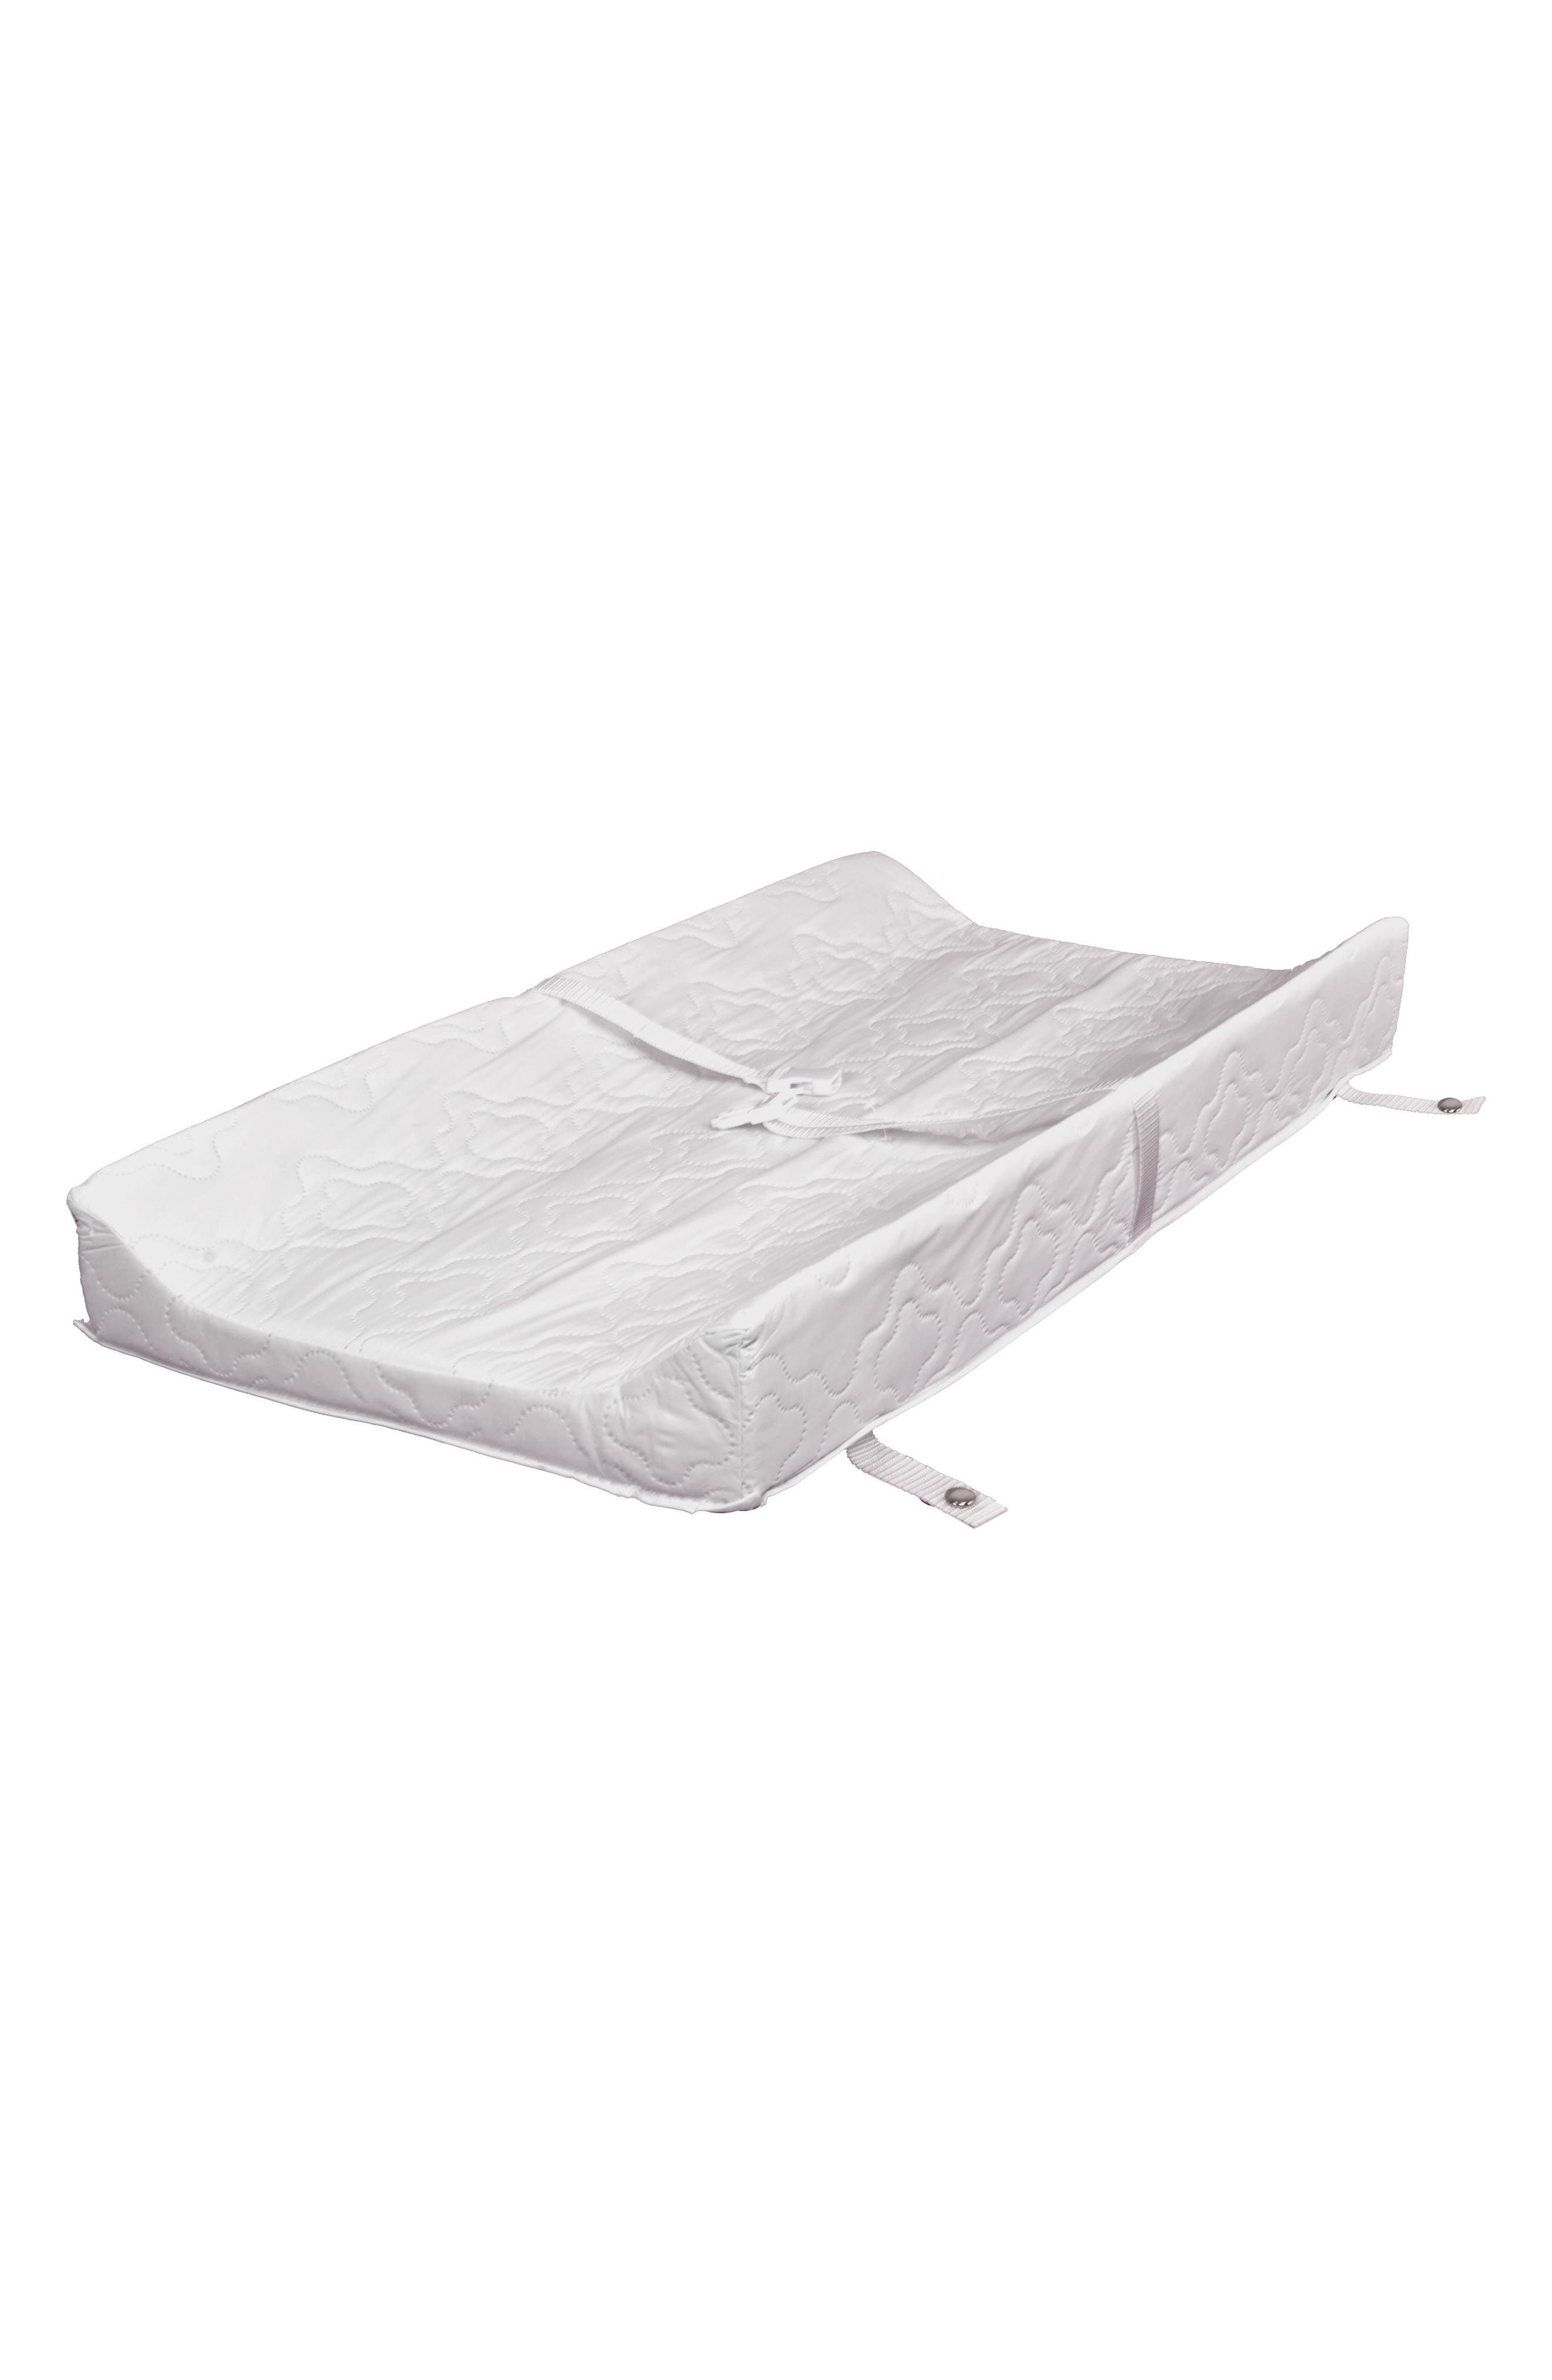 Waterproof Contoured Changing Pad for babyletto Changers/Dressers,                             Main thumbnail 1, color,                             White